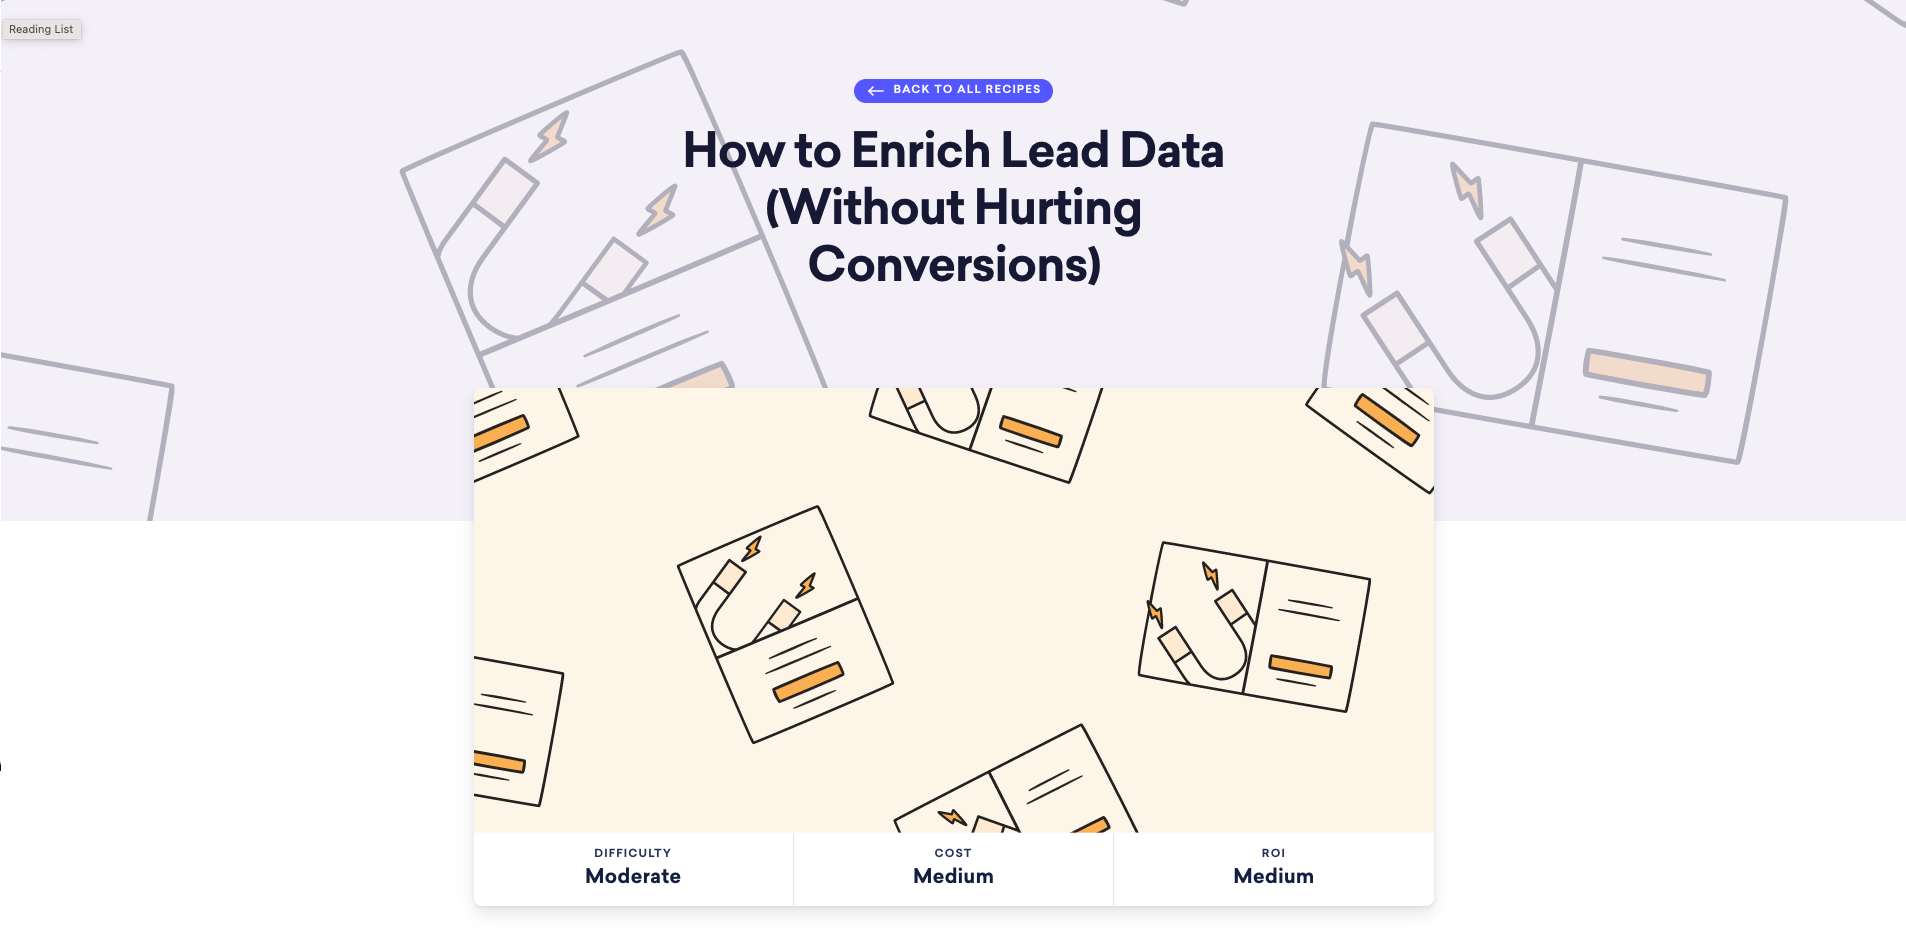 How to Enrich Lead Data (Without Hurting Conversions)